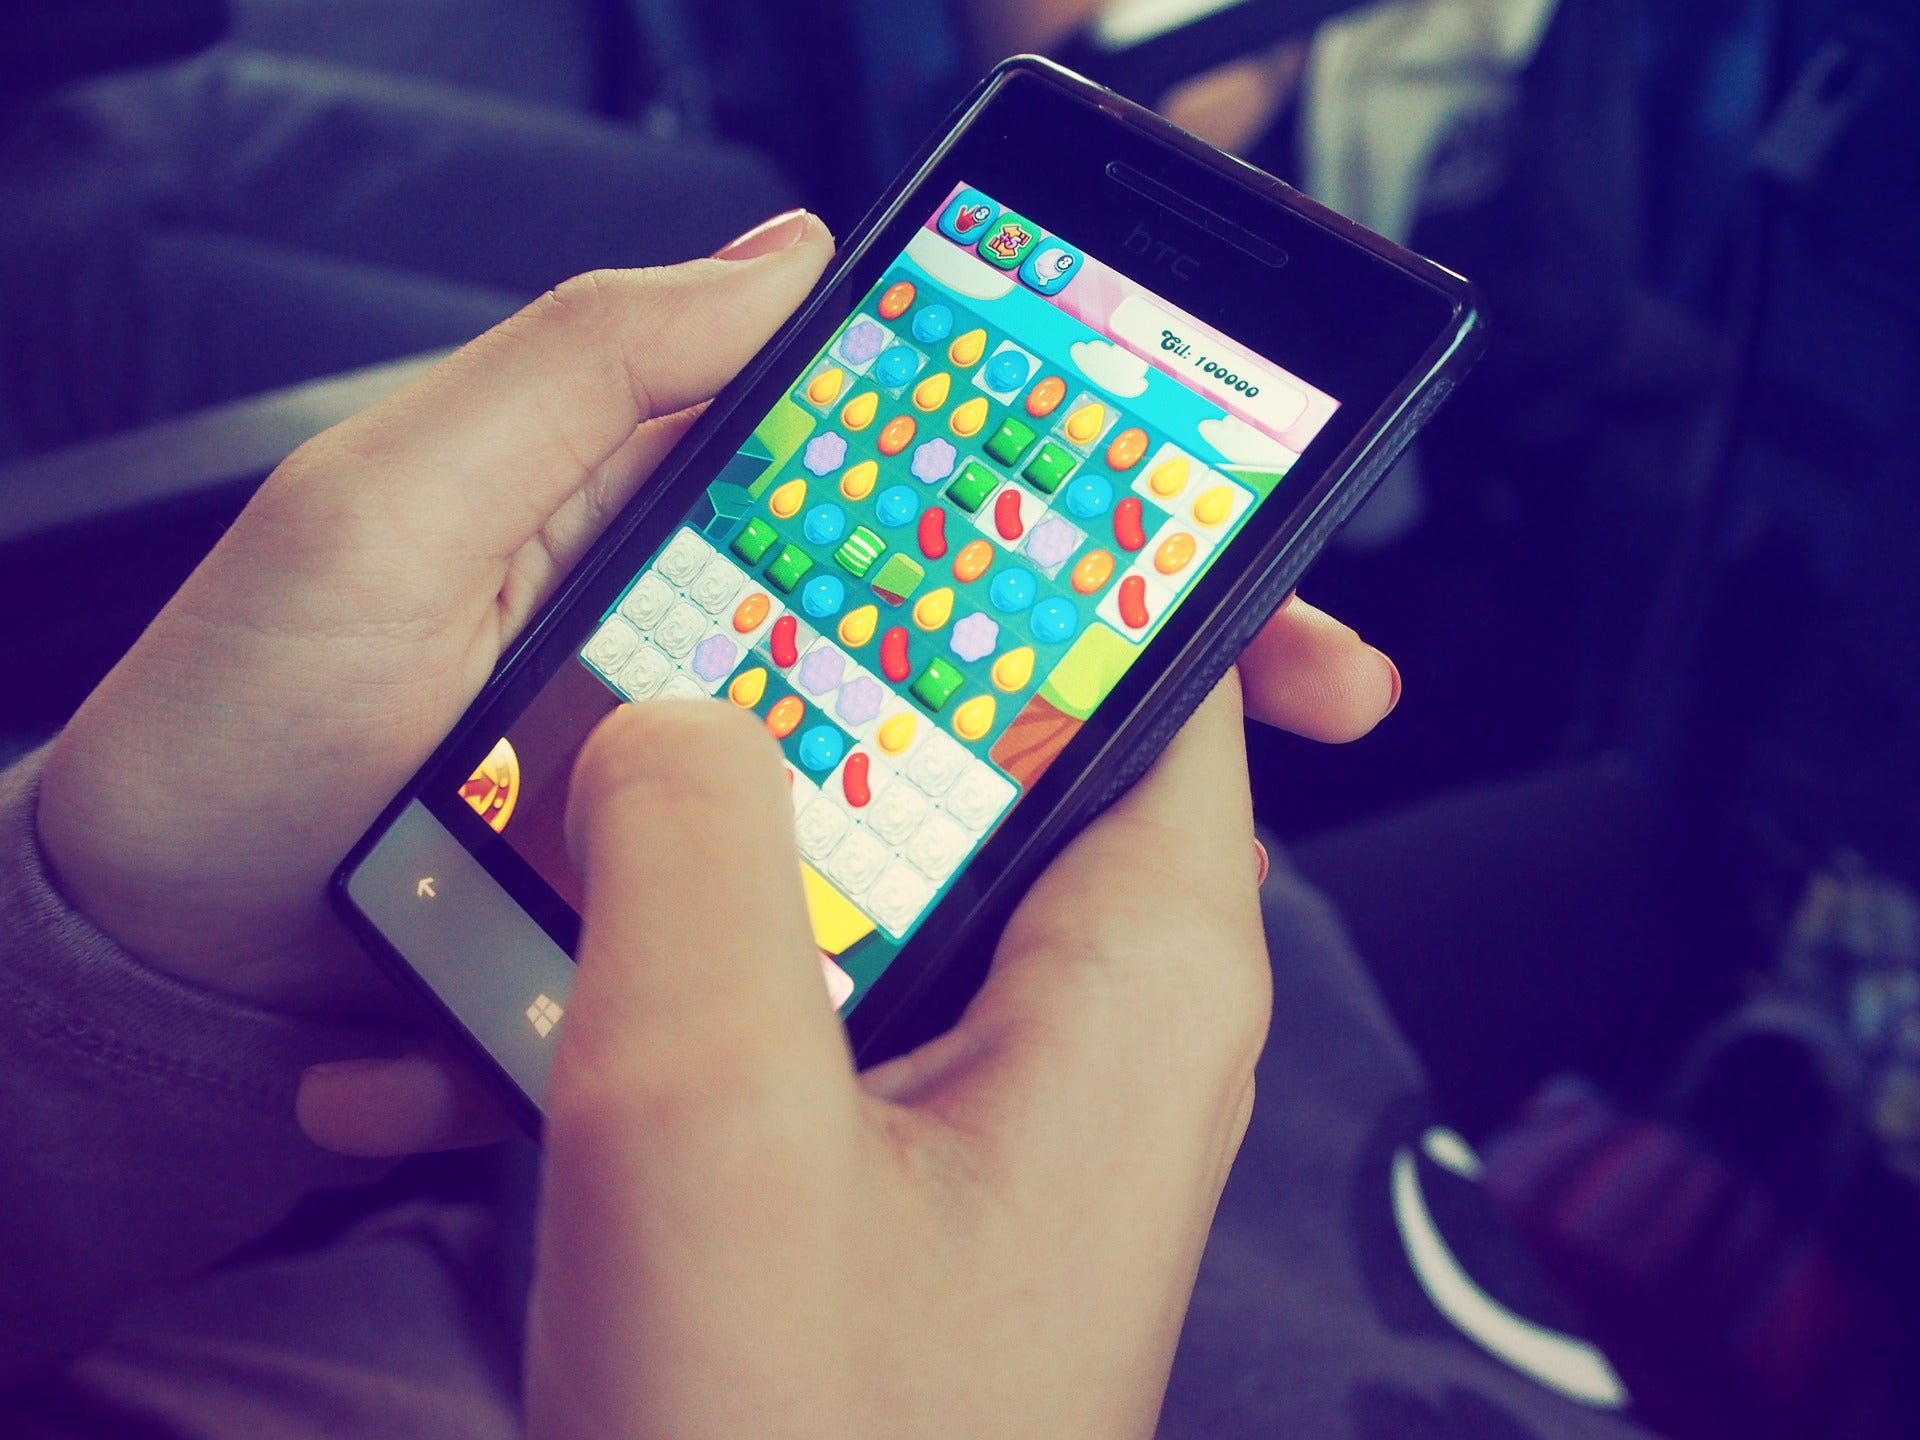 The Best Way to Invest in Mobile Gaming | The Motley Fool